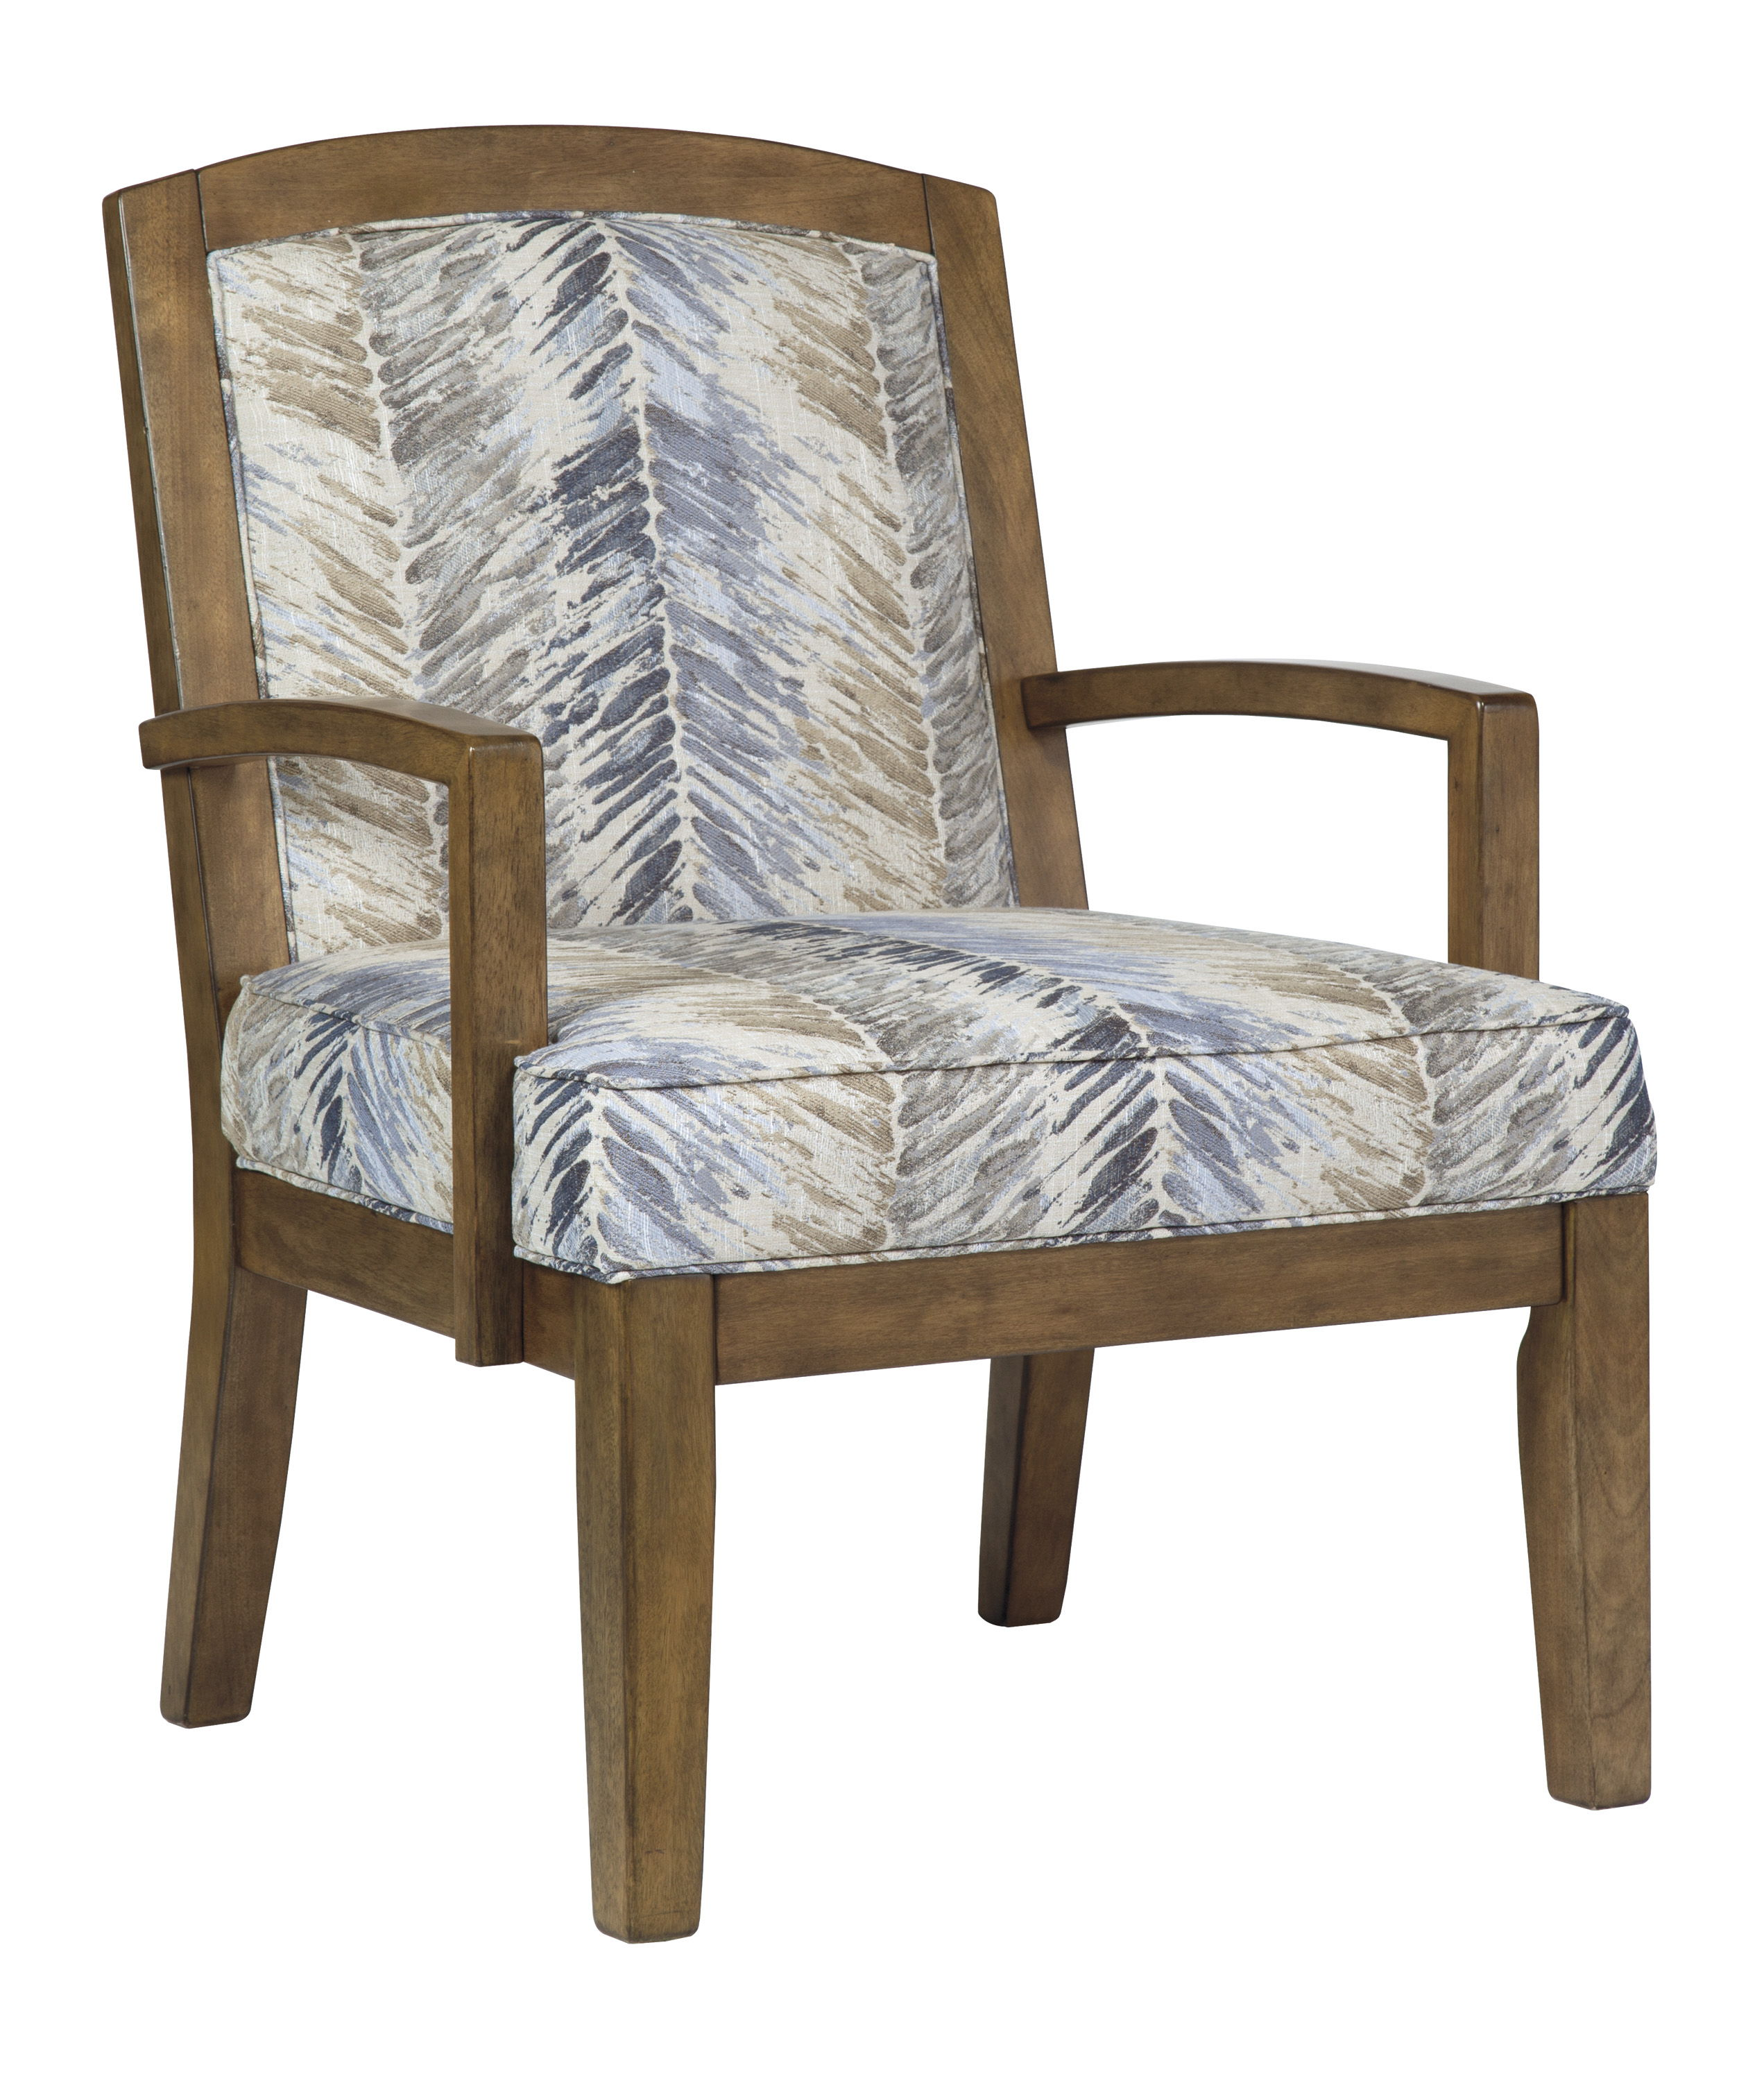 Ashley Furniture Discontinued: Ashley Furniture Hillsway Accent Chair